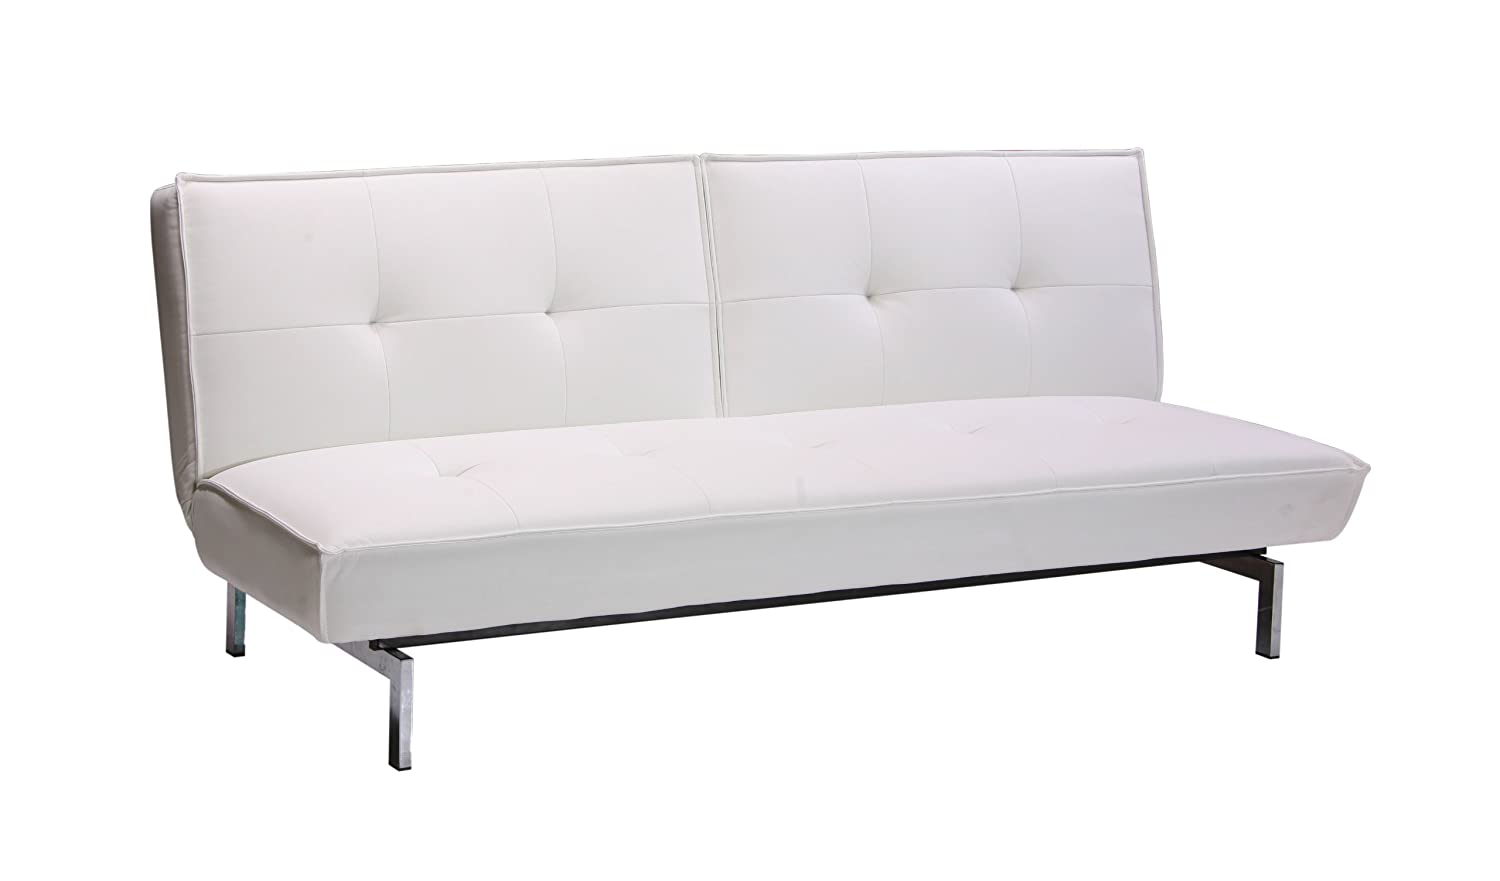 stylish size elm innovative regarding com bliss white of on west new sofa furniture inside with sushi double sleeper ege queen